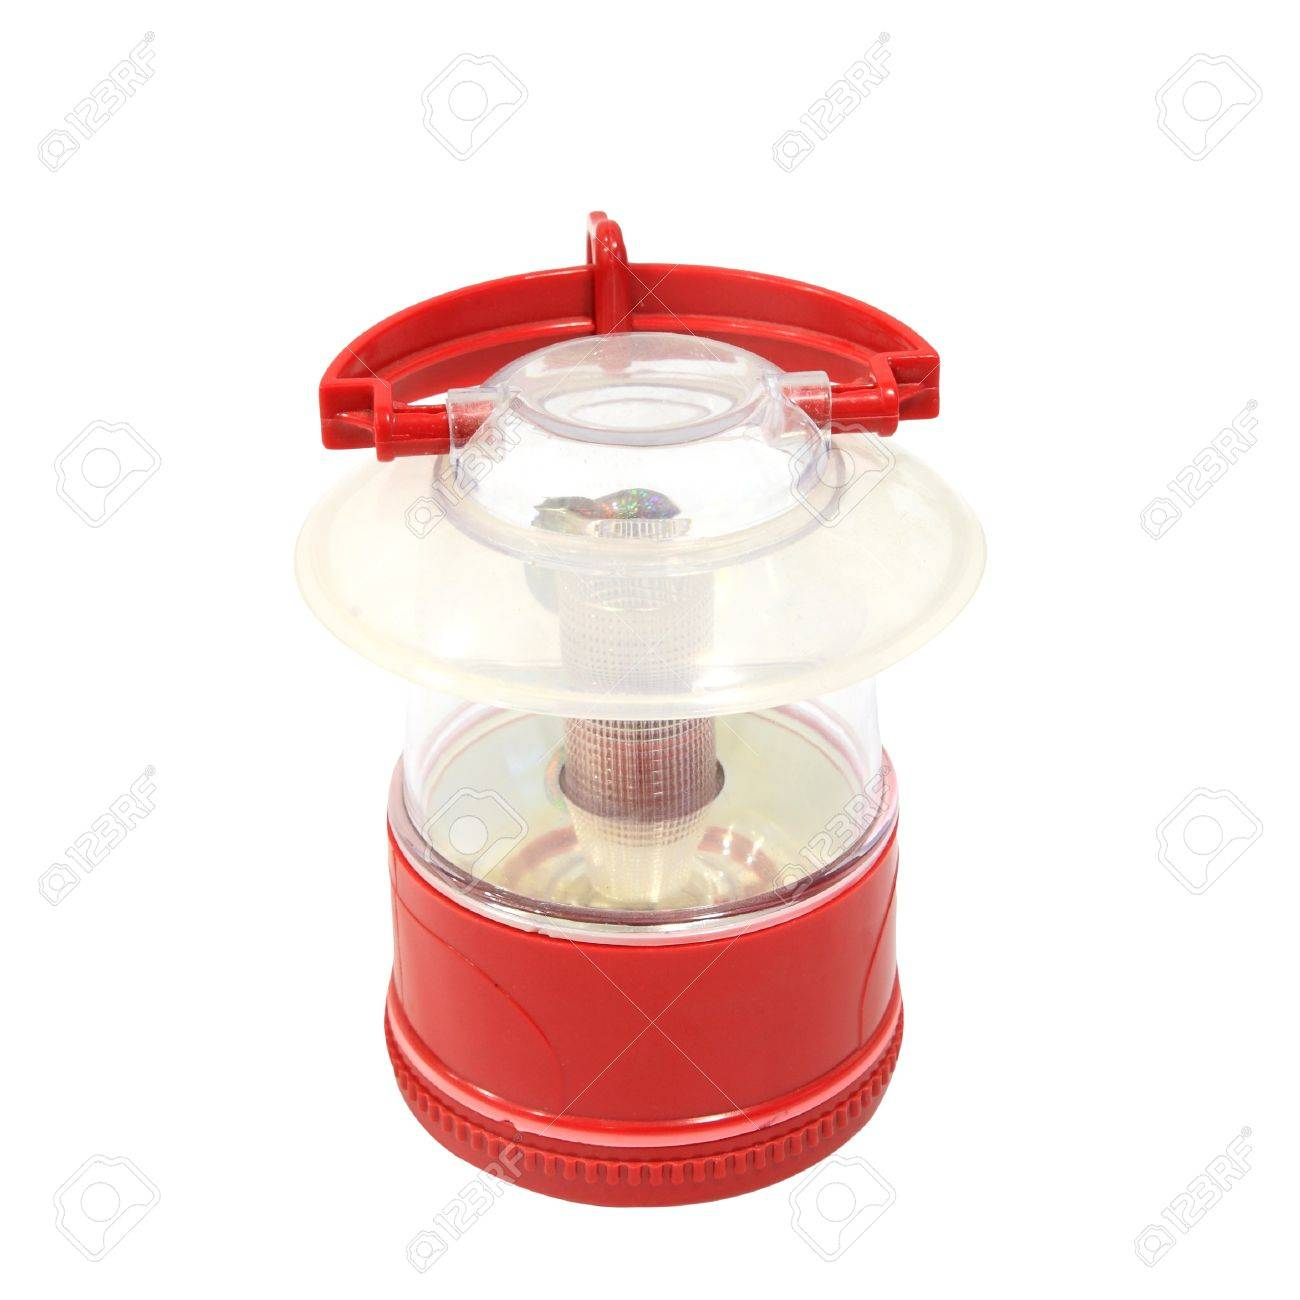 Red oil lamp with holder isolated on white backgroud Stock Photo - 15123091